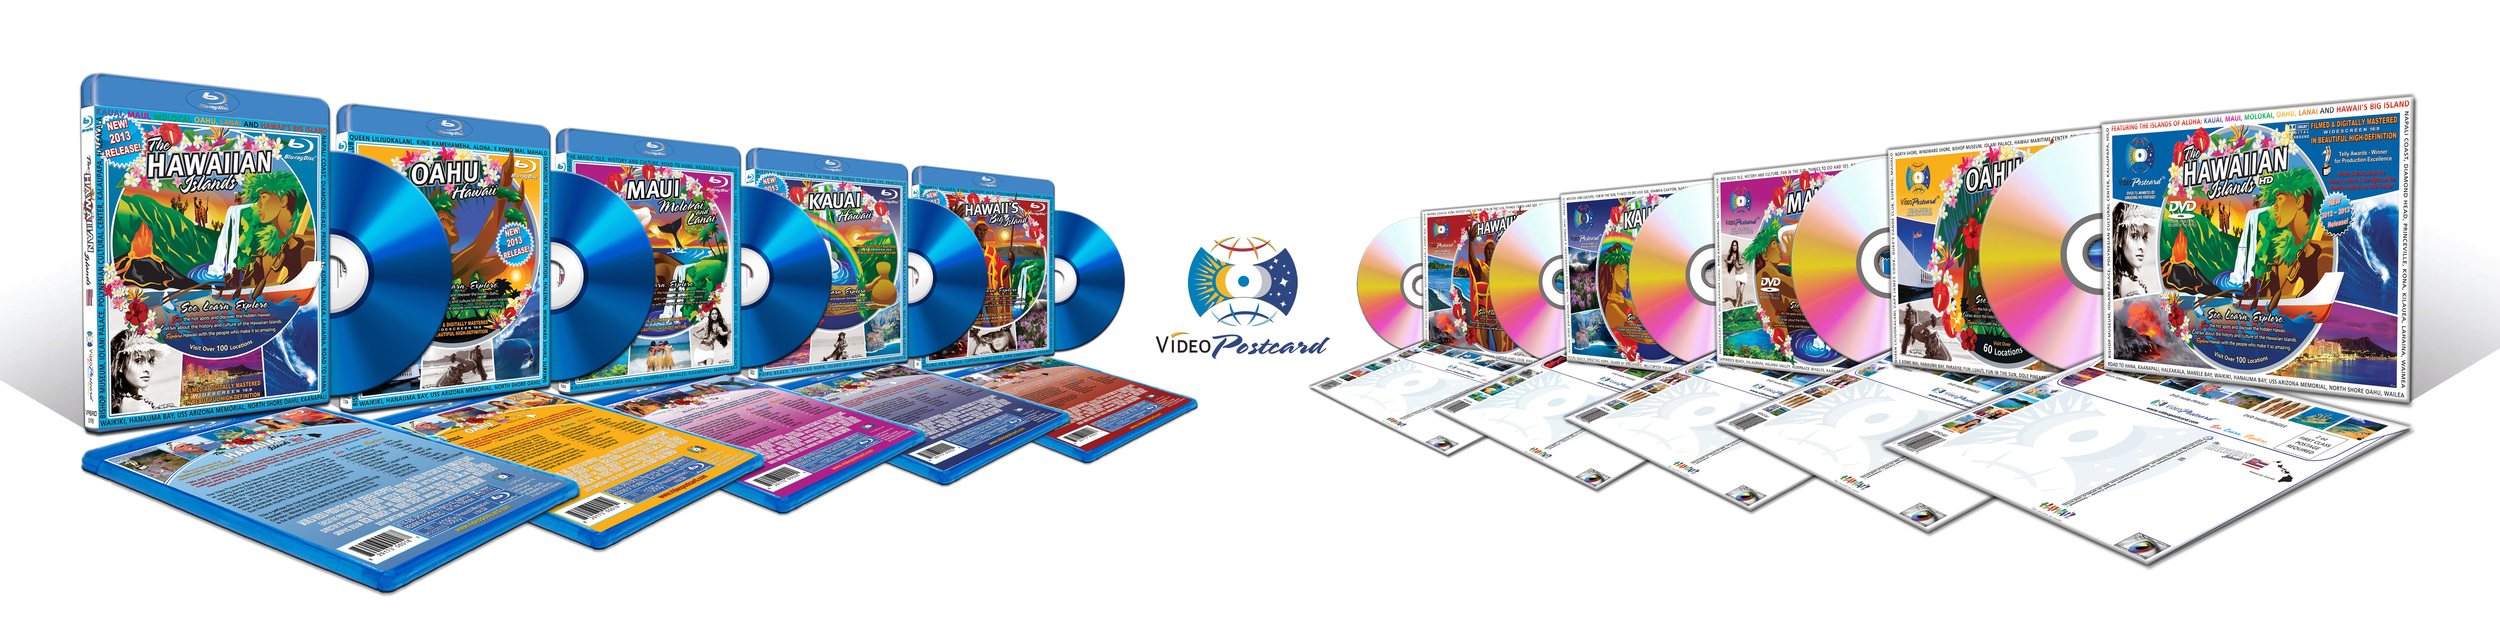 VPC Blu-Ray and DVD set-up.jpg